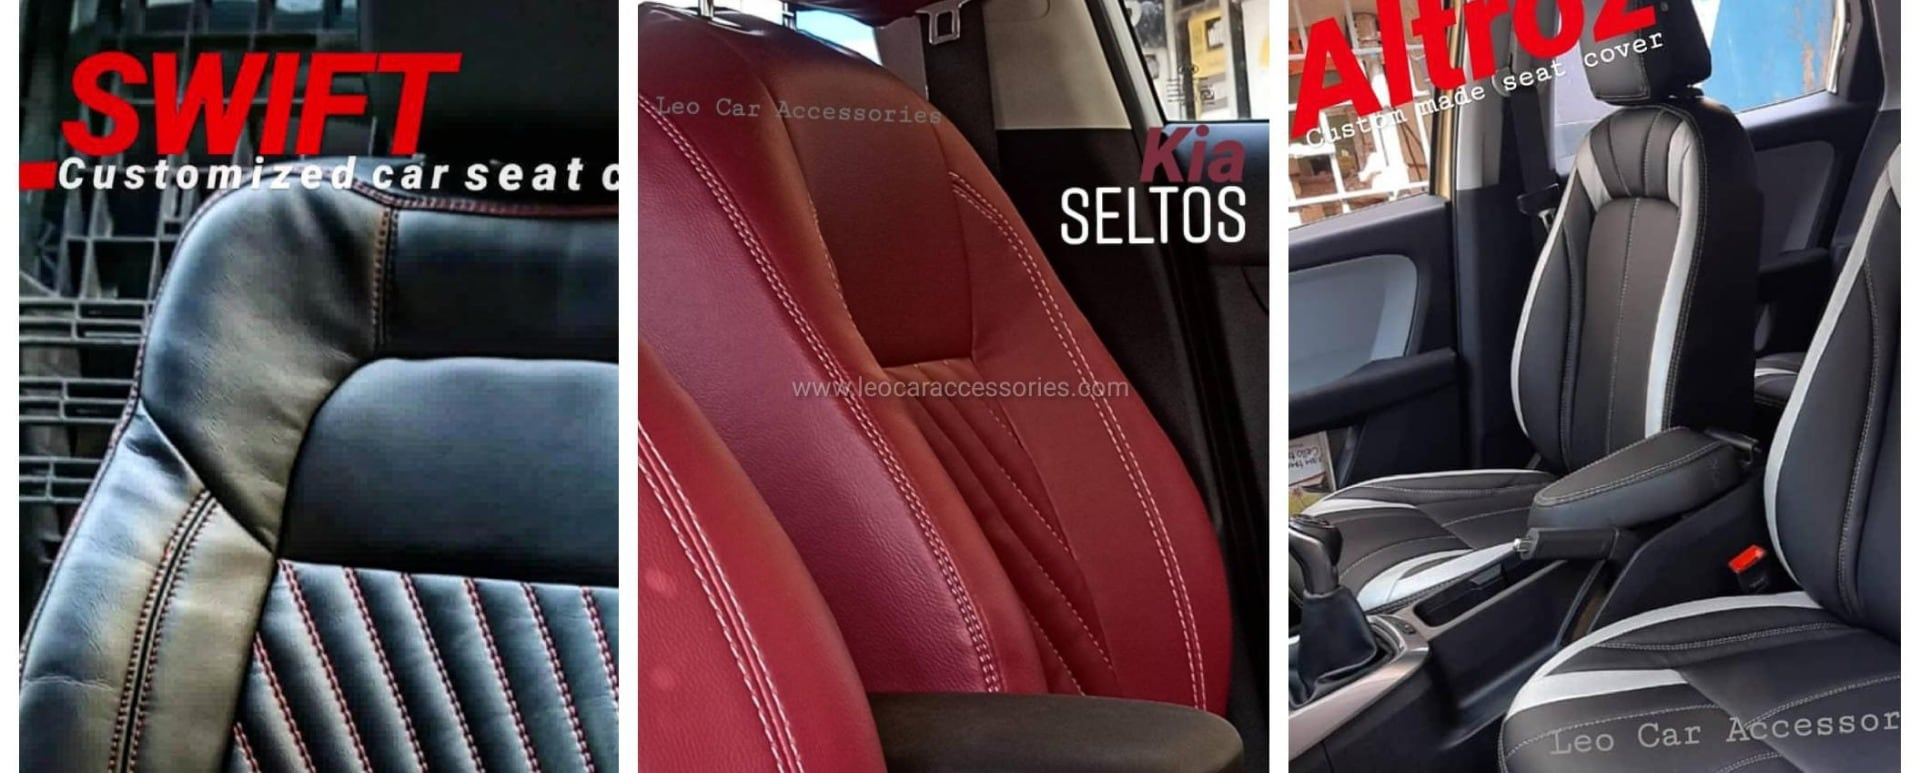 Leo Car Accessories - Car Seat Cover and Accessories in Mount Road, Chennai